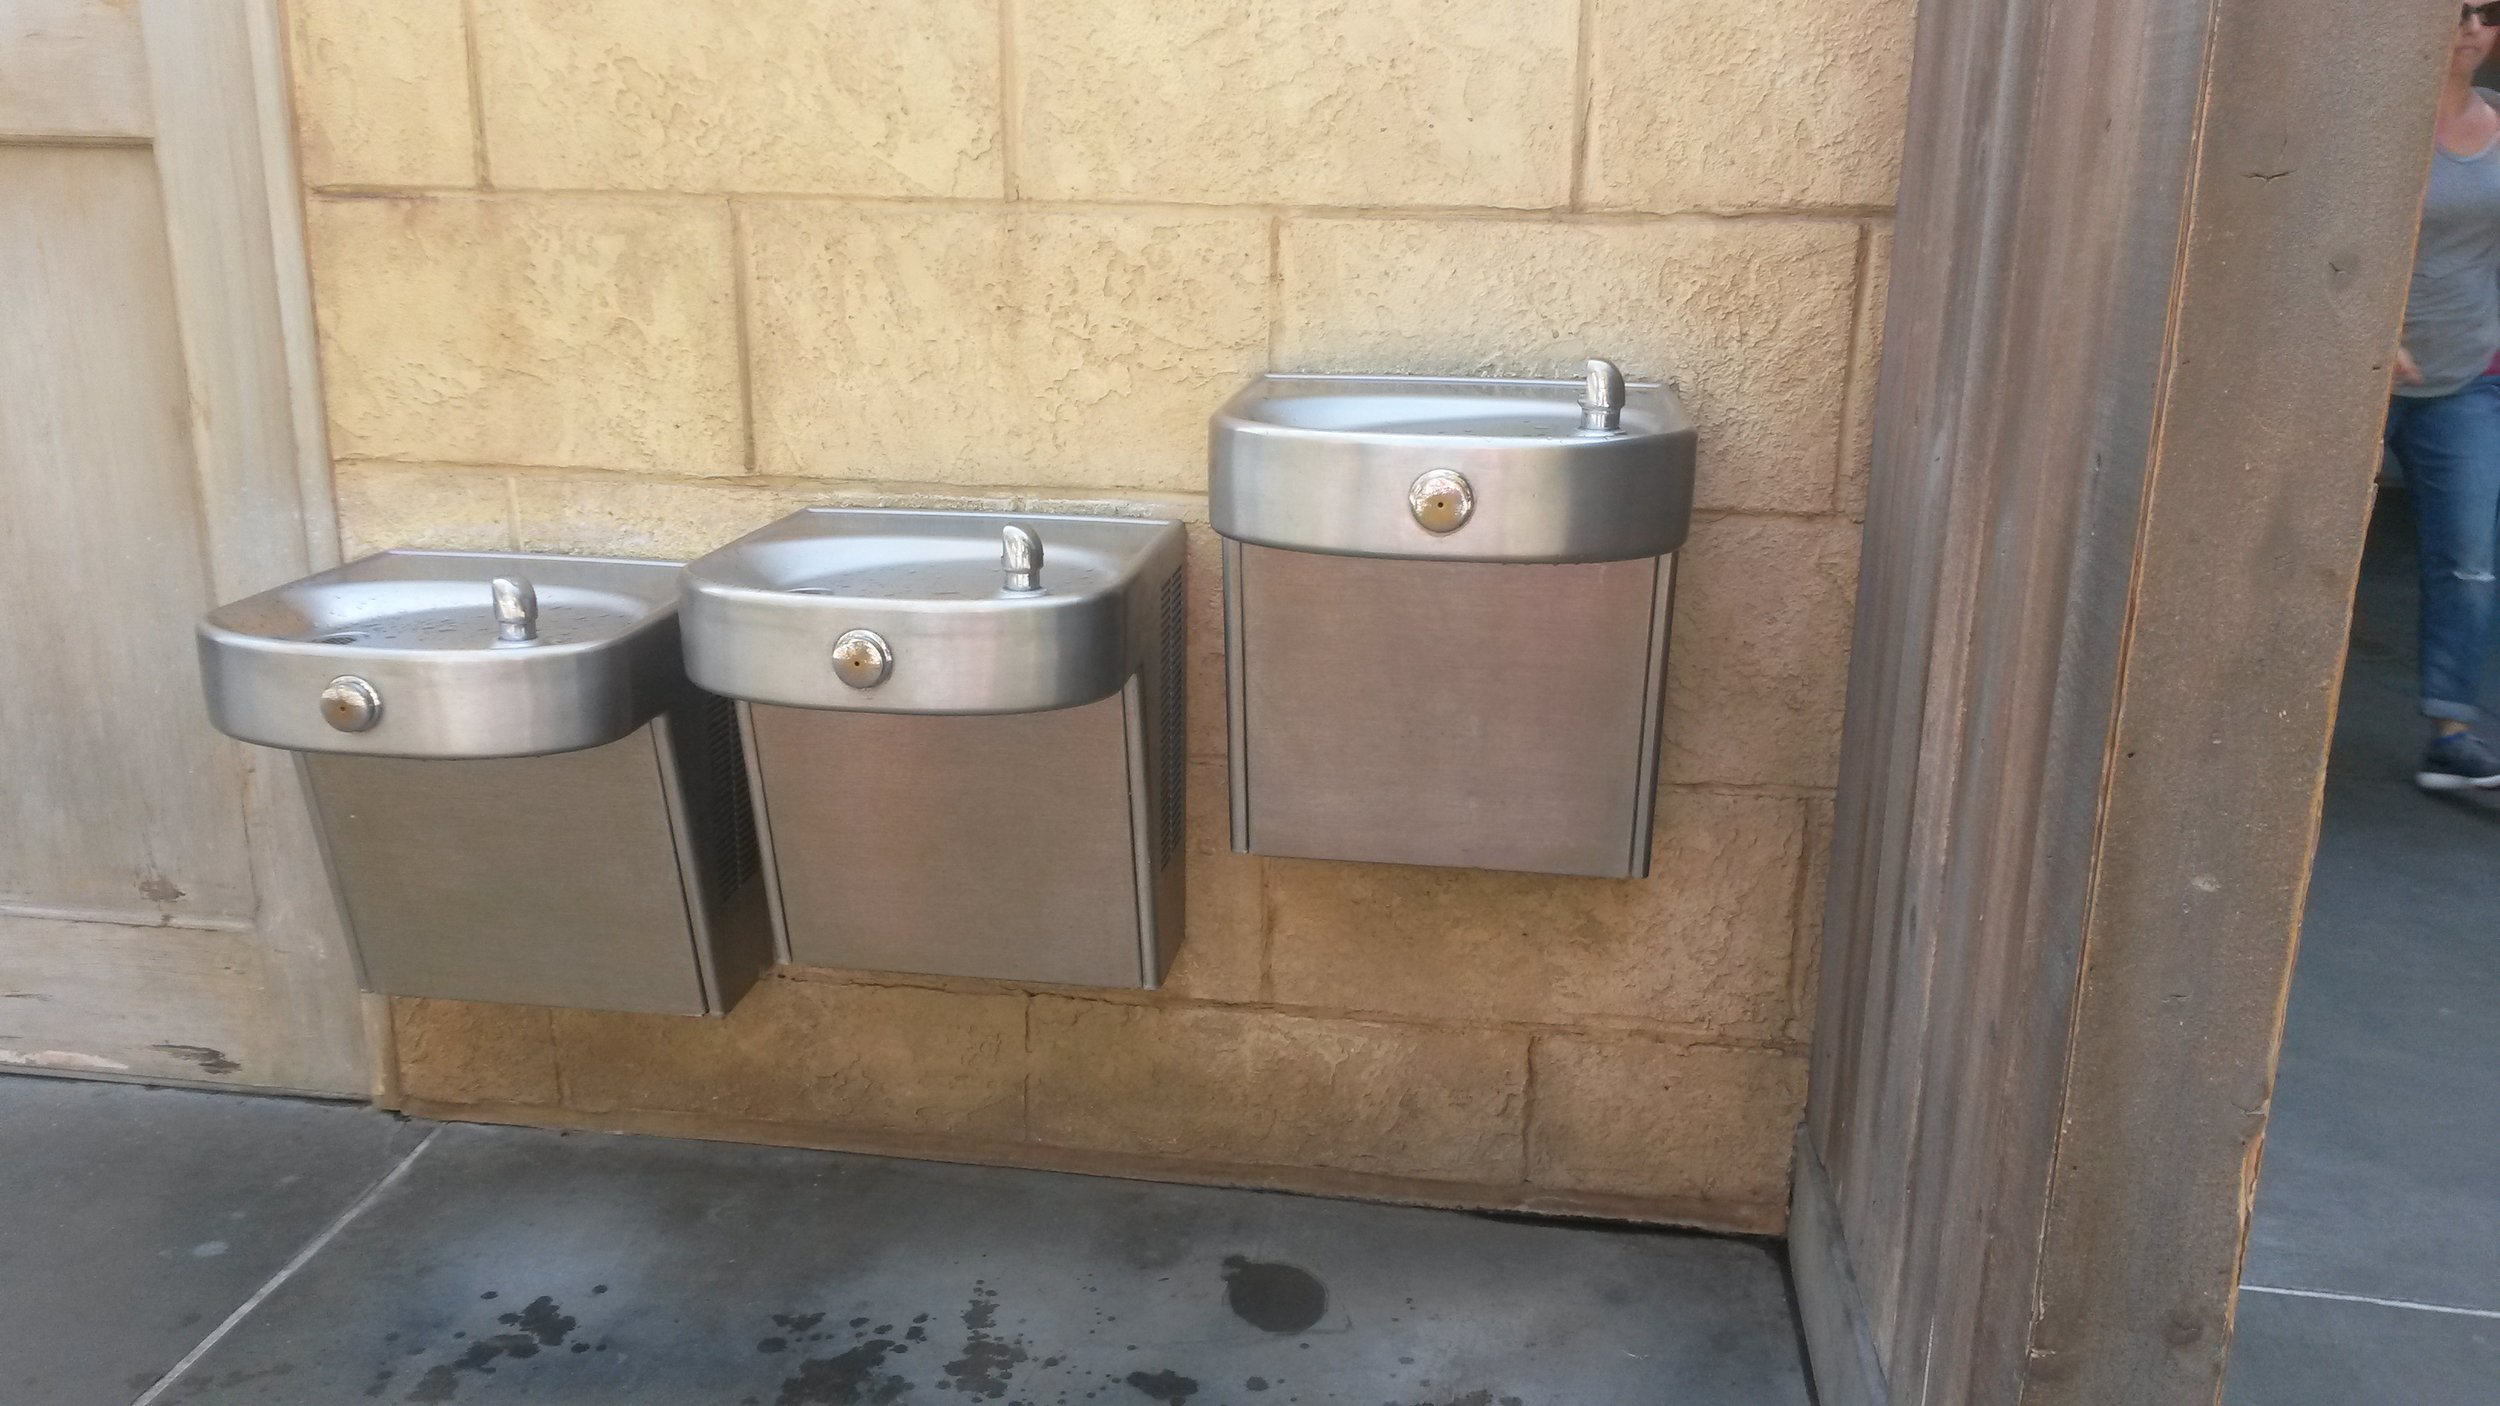 Water fountains for people of all heights in California Adventure.